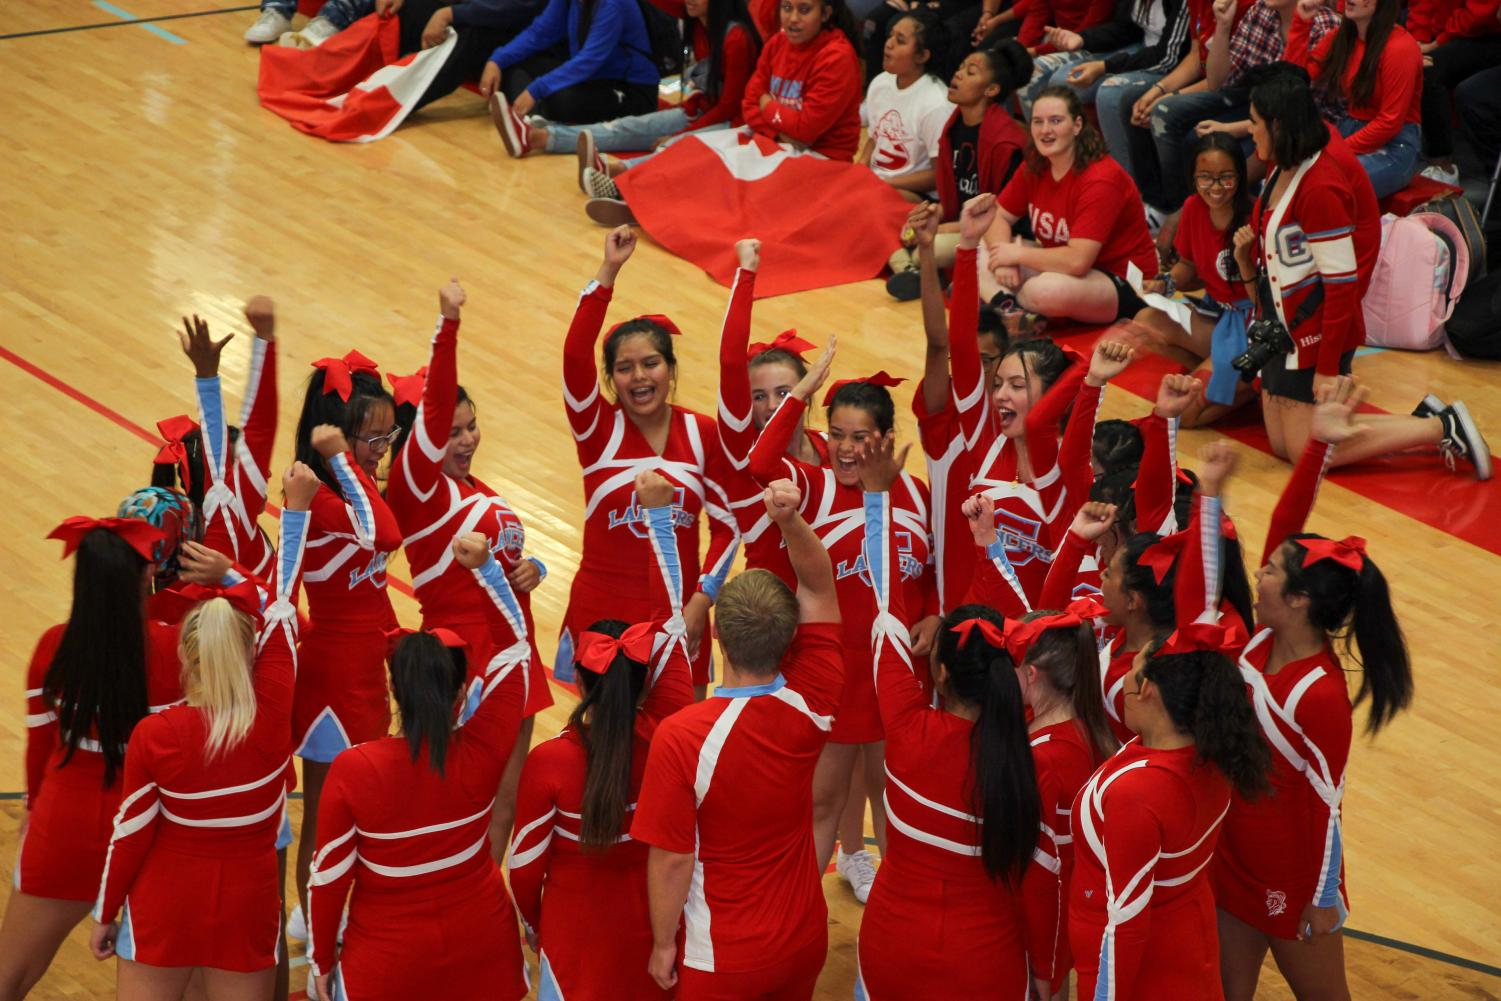 Granger High's cheerleaders prepare for their aerial stunts at the homecoming spirit assembly.